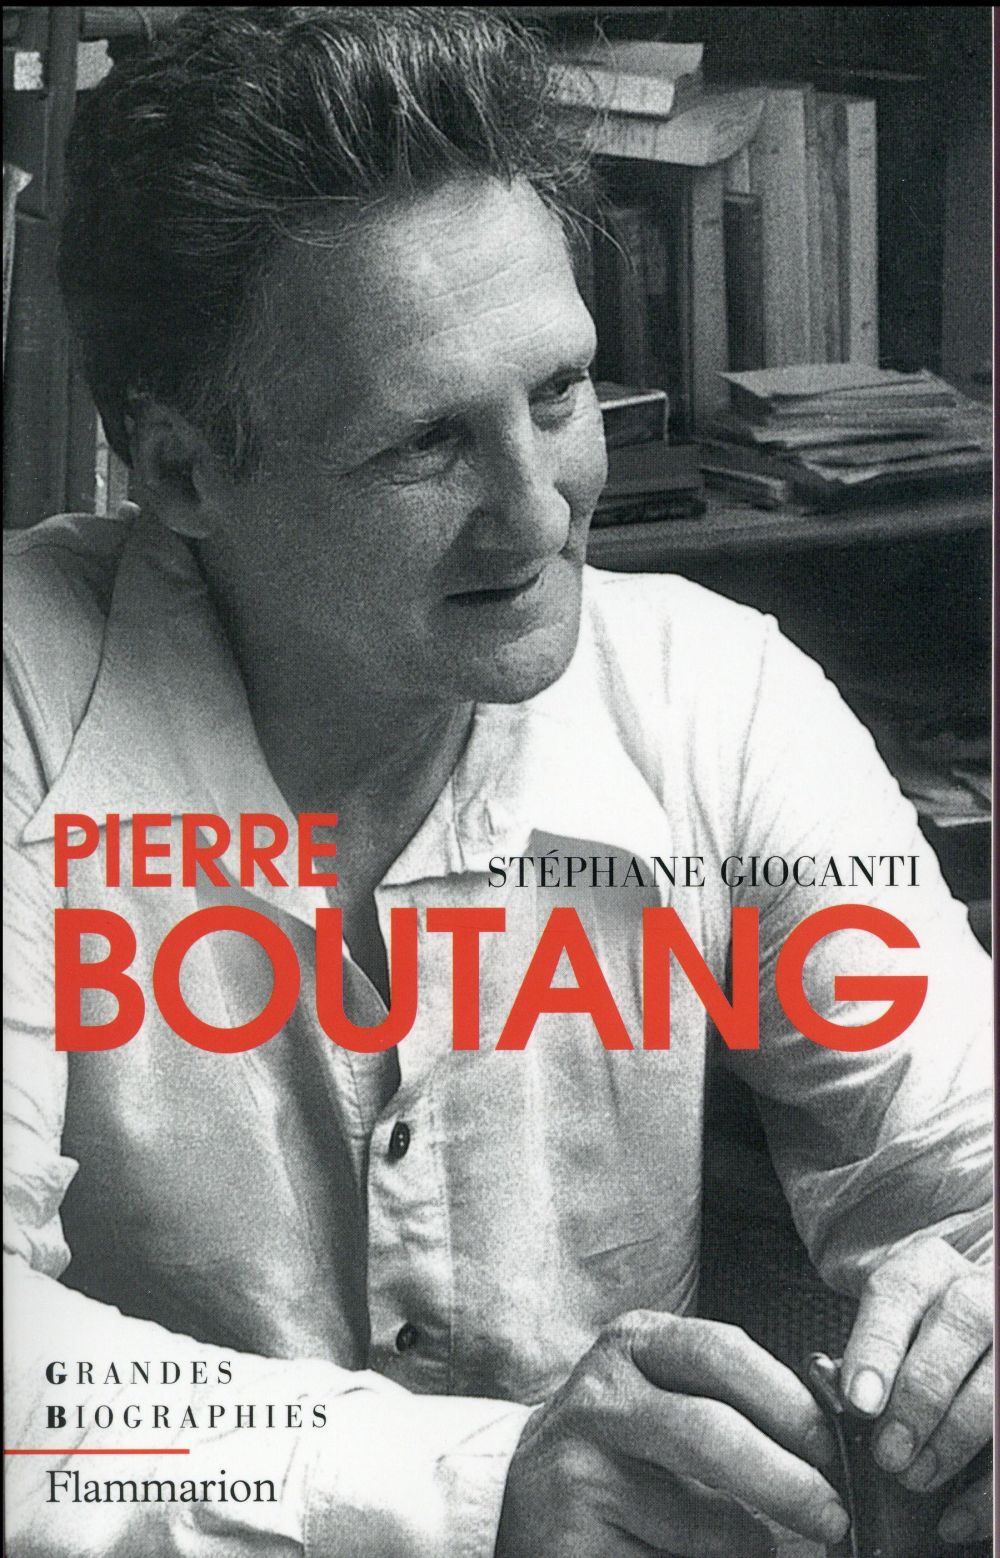 Pierre Boutang ; indocile, inclassable, inactuel